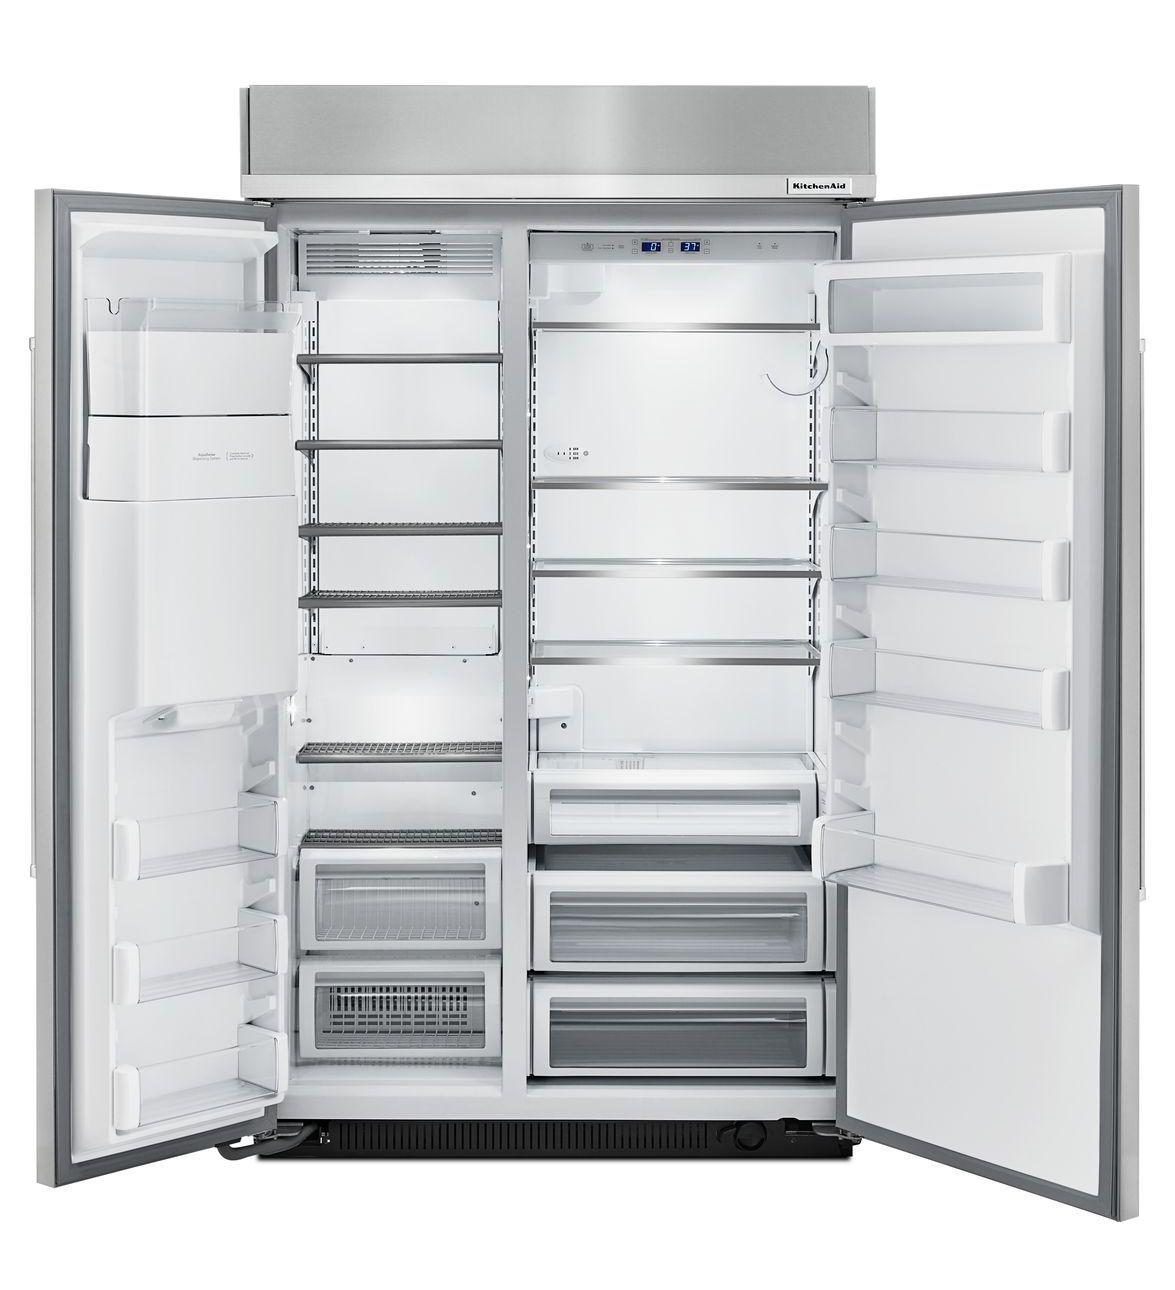 Kitchenaid 48 Inch Built In Side By Side Refrigerator With